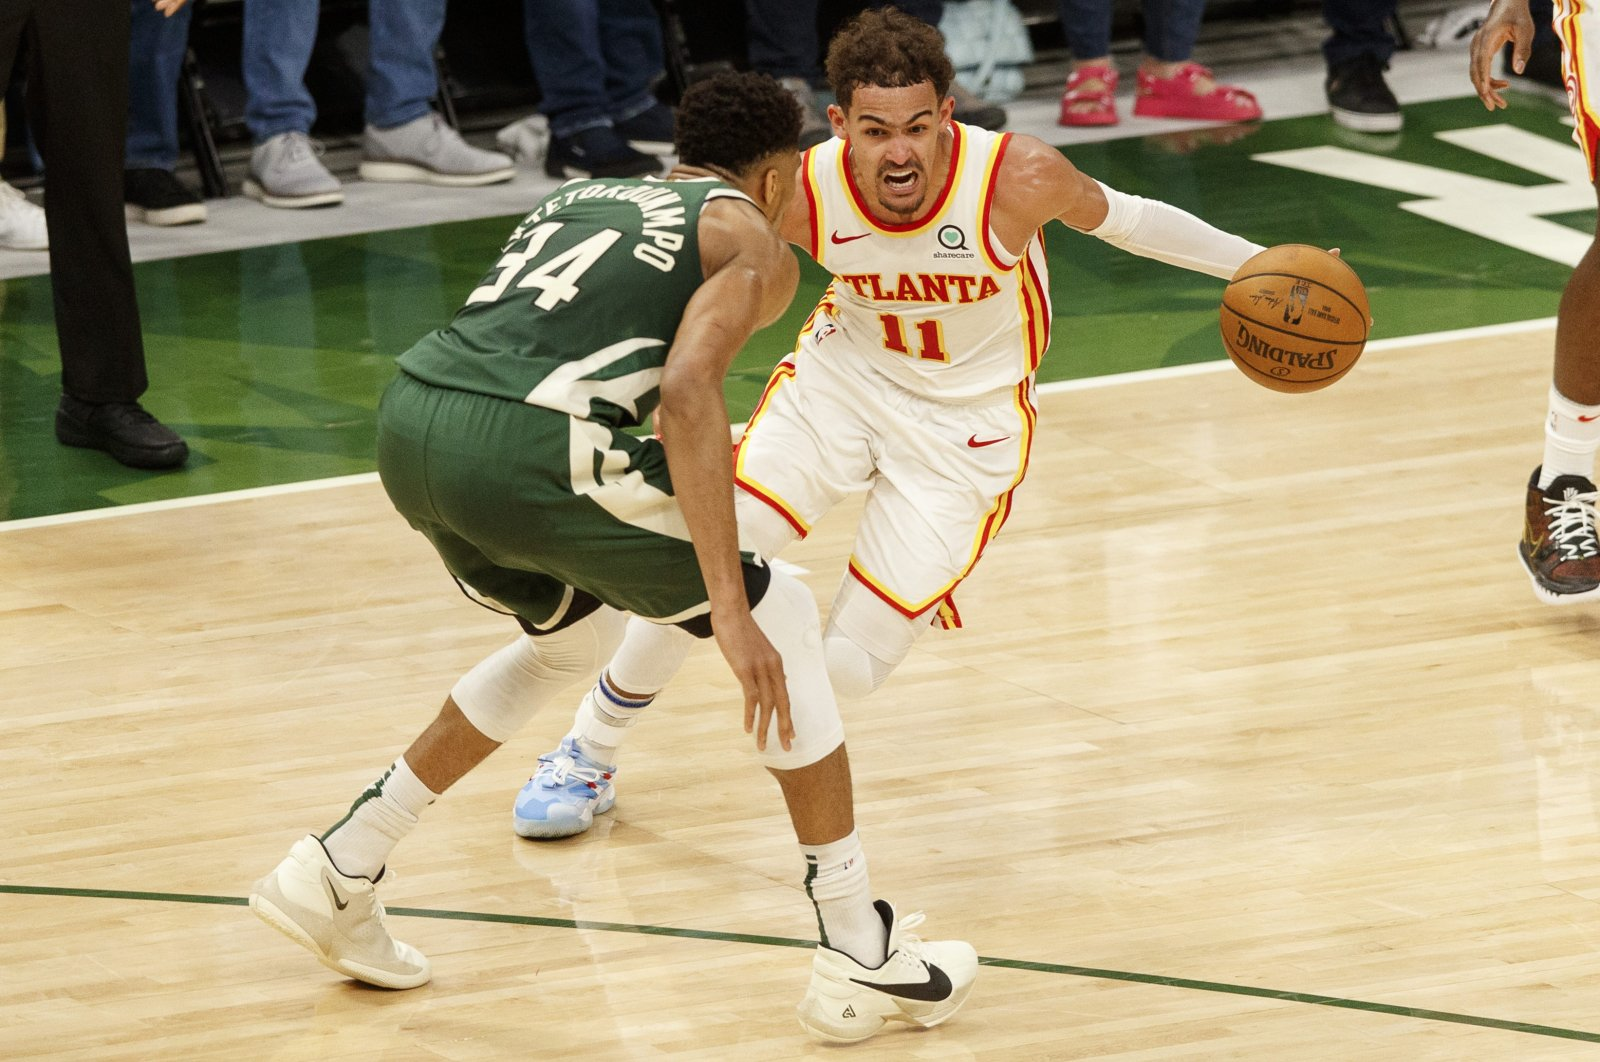 Atlanta Hawks guard Trae Young (R) drives for the basket against Milwaukee Bucks forward Giannis Antetokounmpo during Game 1 of the Eastern Conference Finals for the 2021 NBA Playoffs at Fiserv Forum, Milwaukee, Wisconsin, U.S., June 23, 2021. (Reuters Photo)